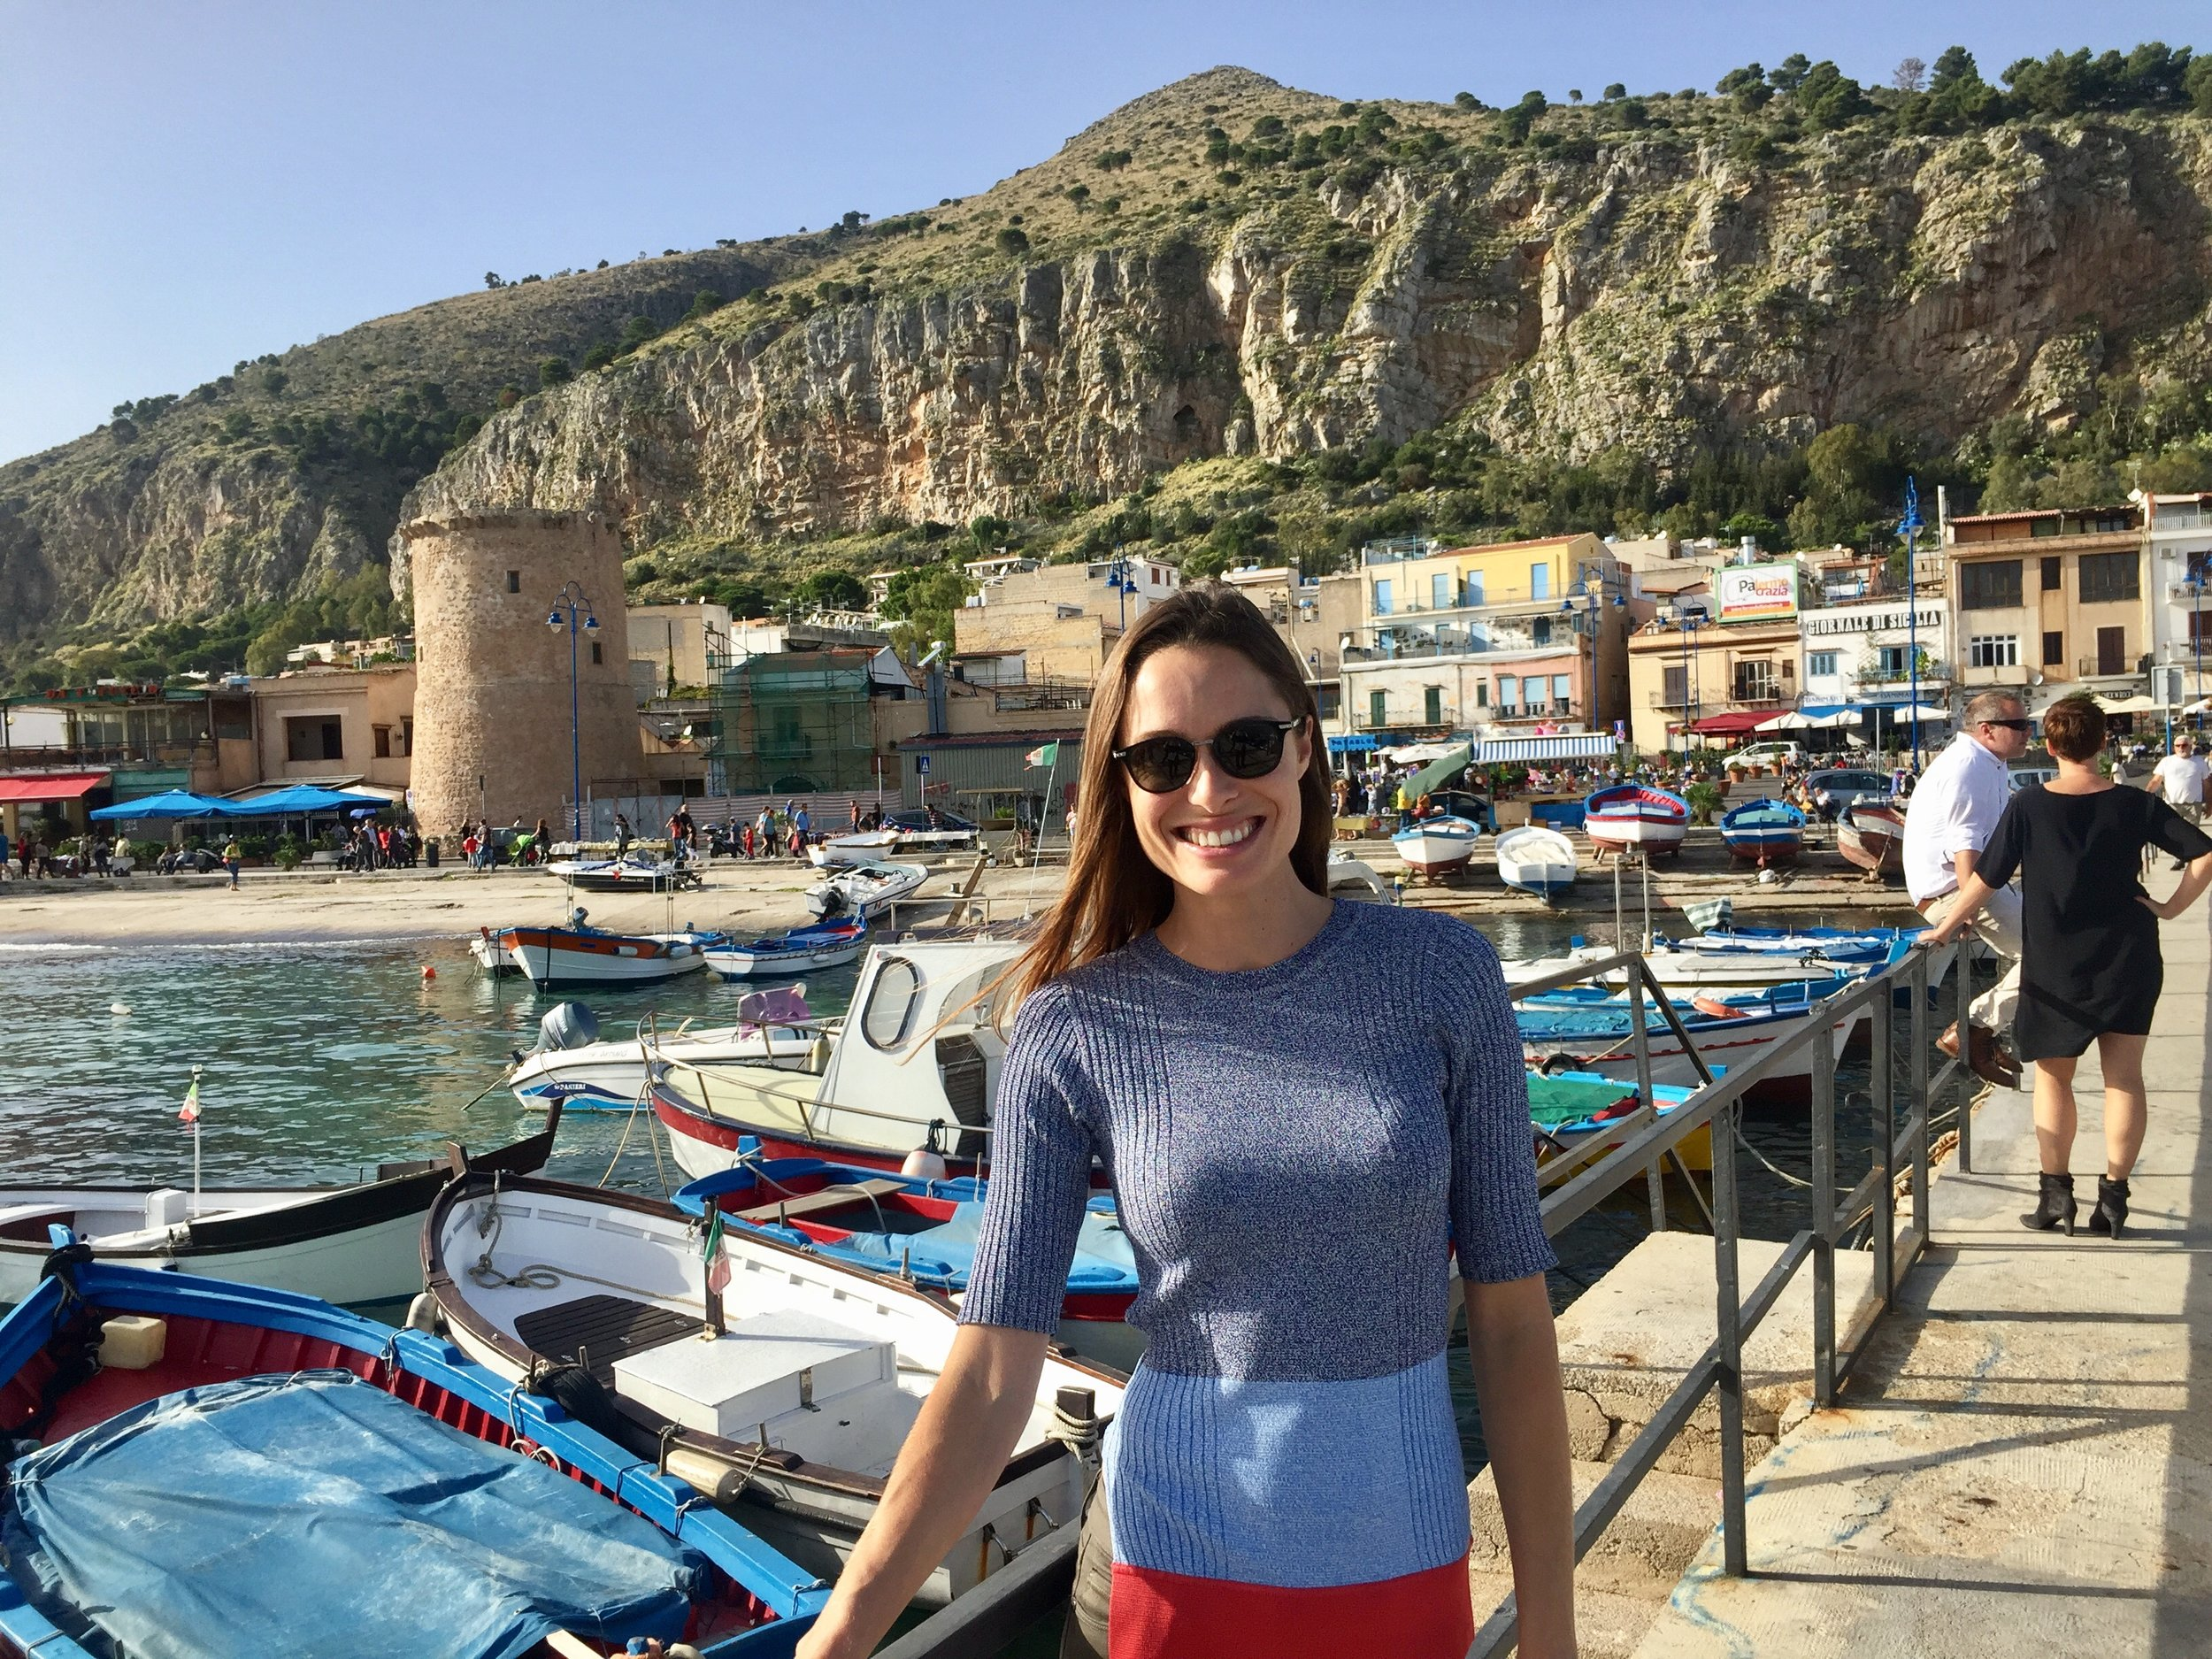 Mondello is the beach town most loved by the locals of Palermo